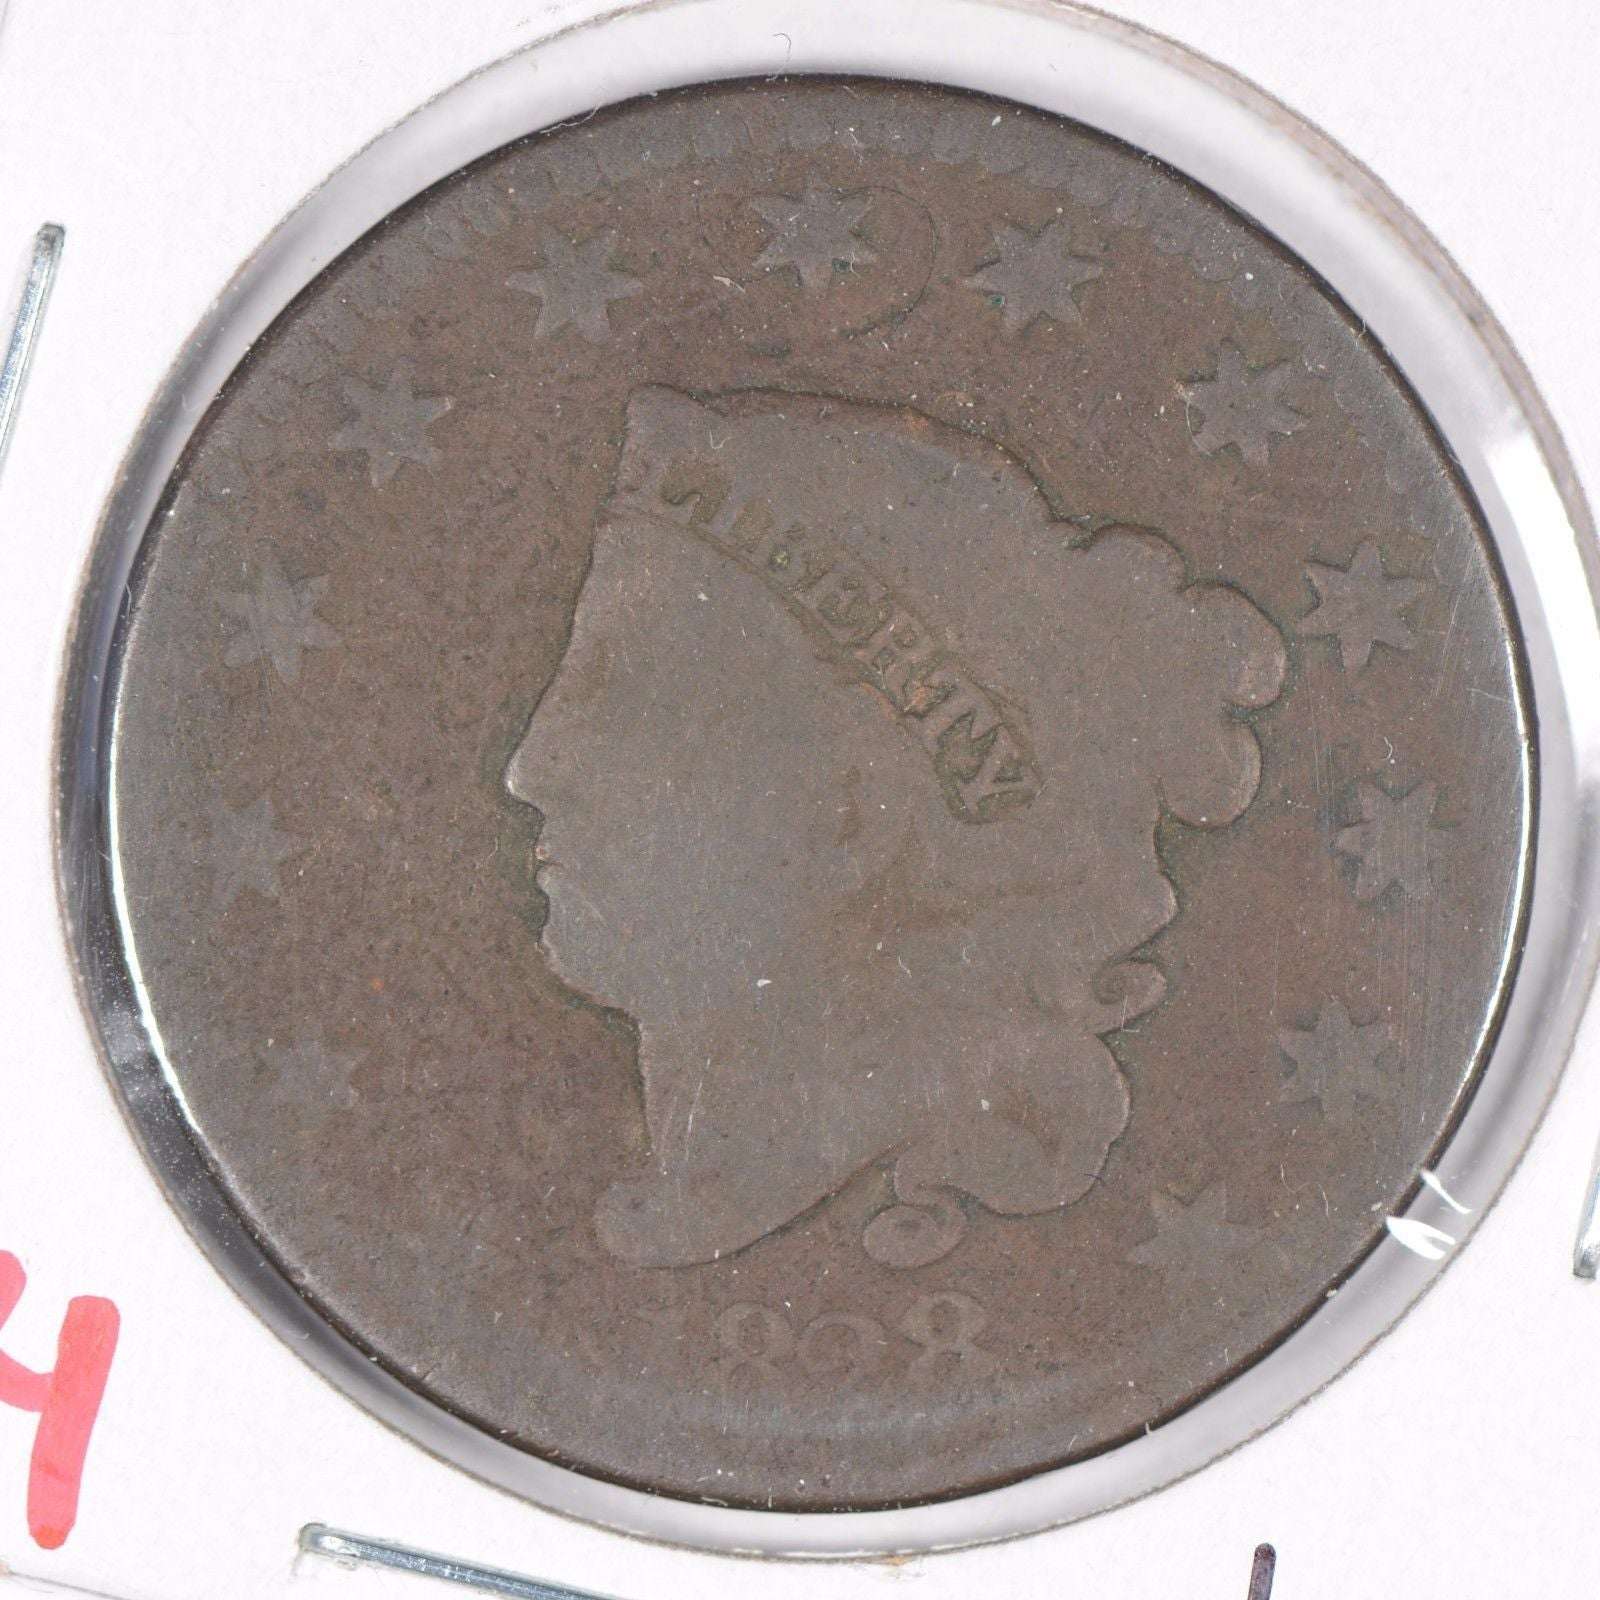 1828 Coronet Head Large Cent, Large Narrow Date, Good Condition